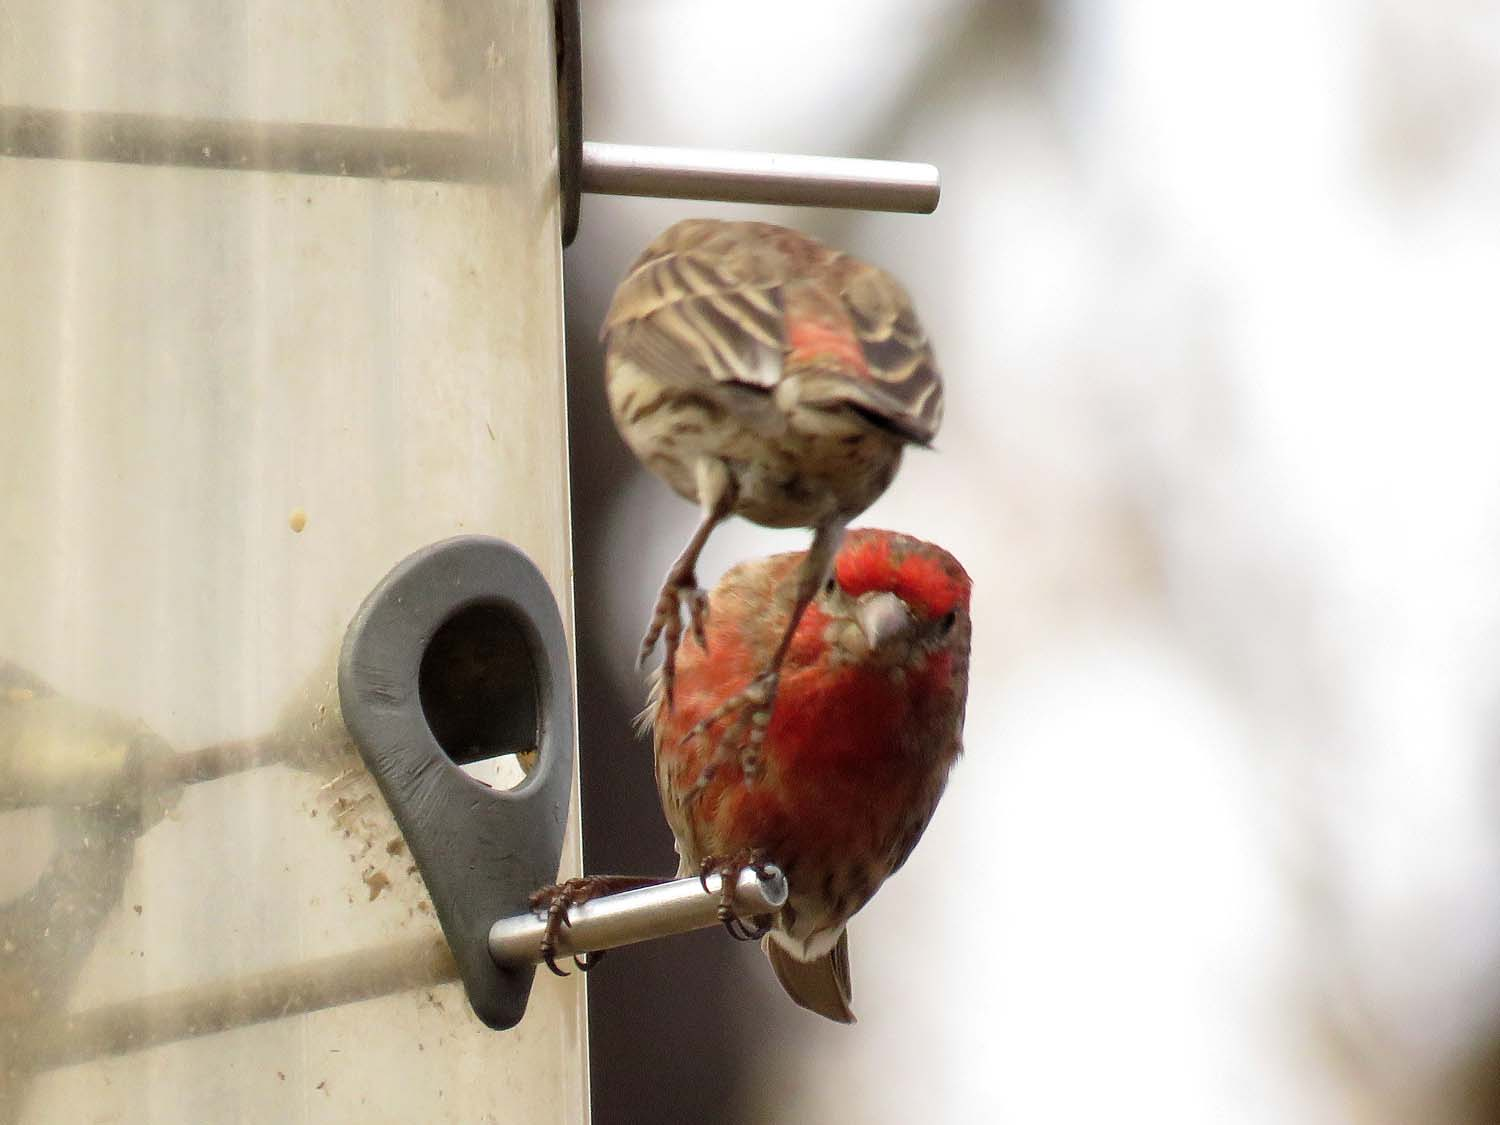 Acrobatic house finches, Central Park, March 14, 2018